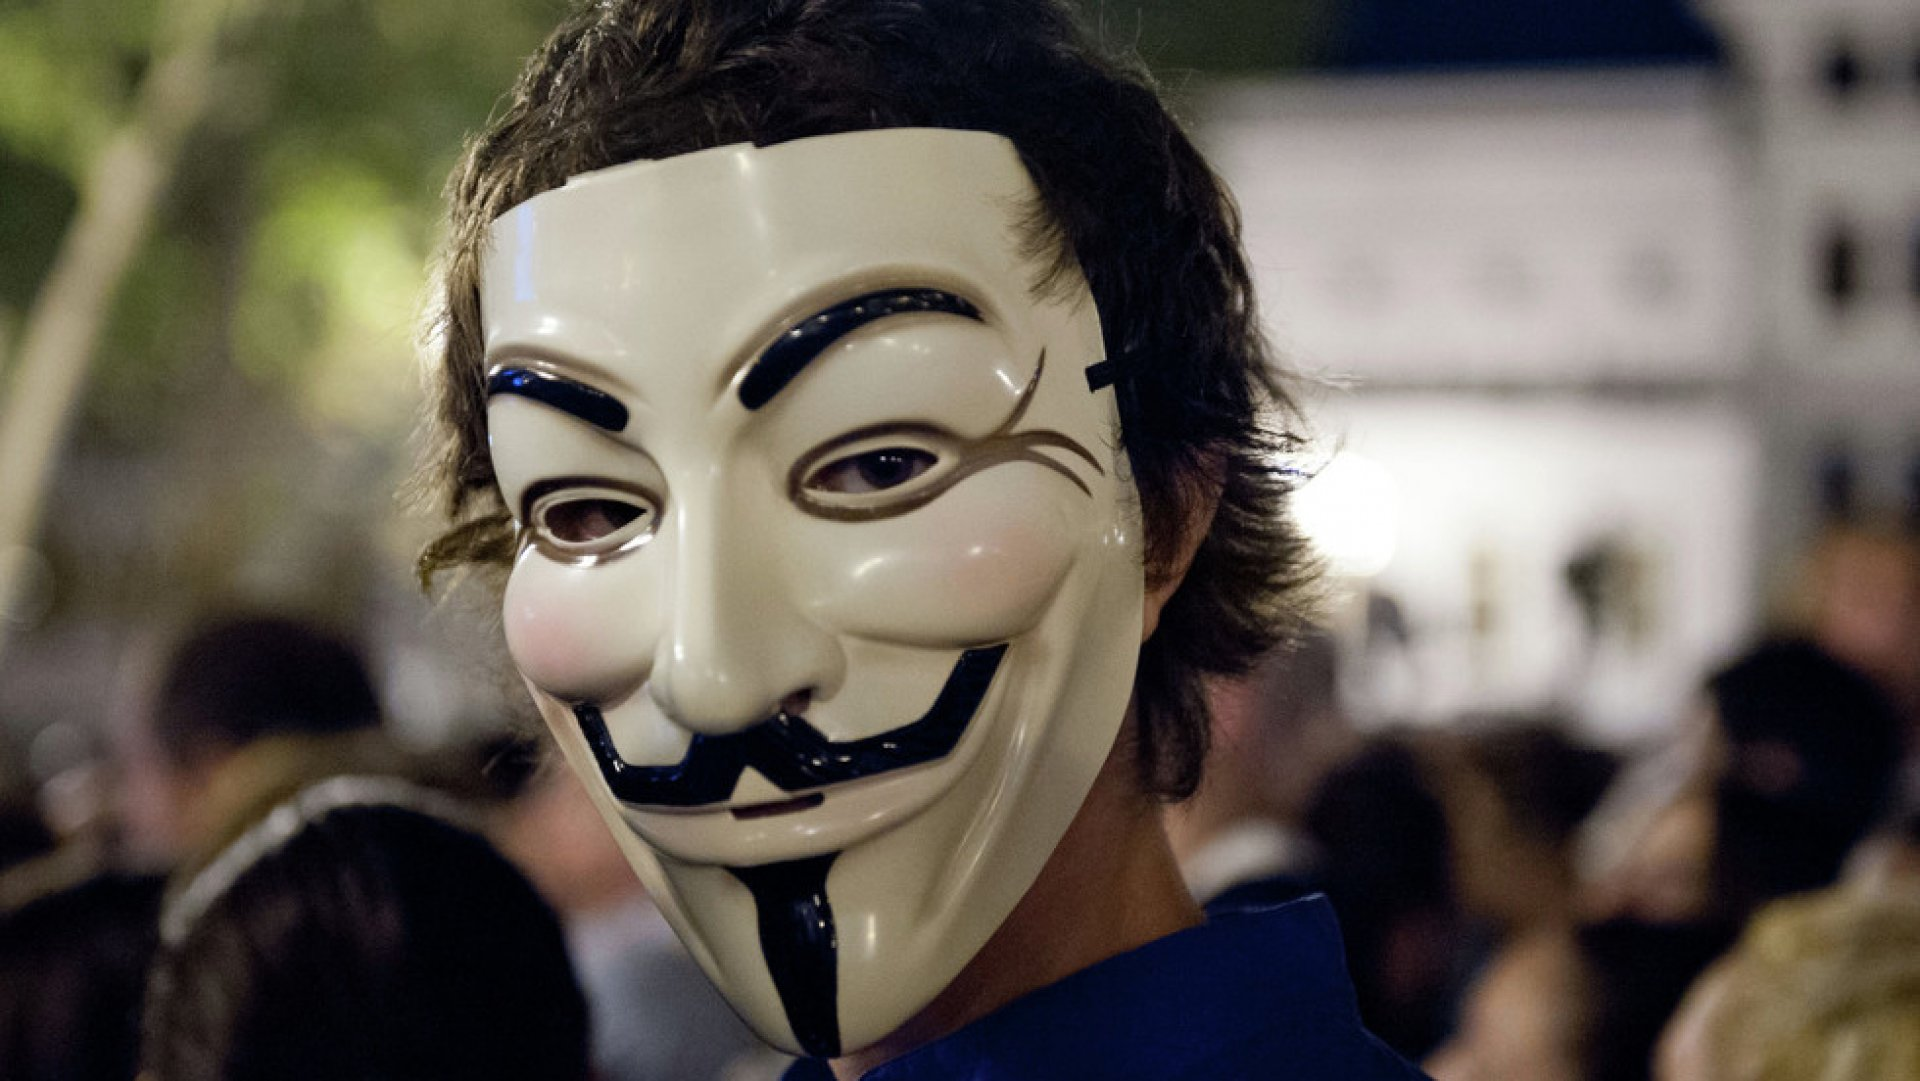 On 5 November every year the effigy of Guy Fawkes is still burned on bonfires across England in recognition of his part in the failed Gunpowder Plot of